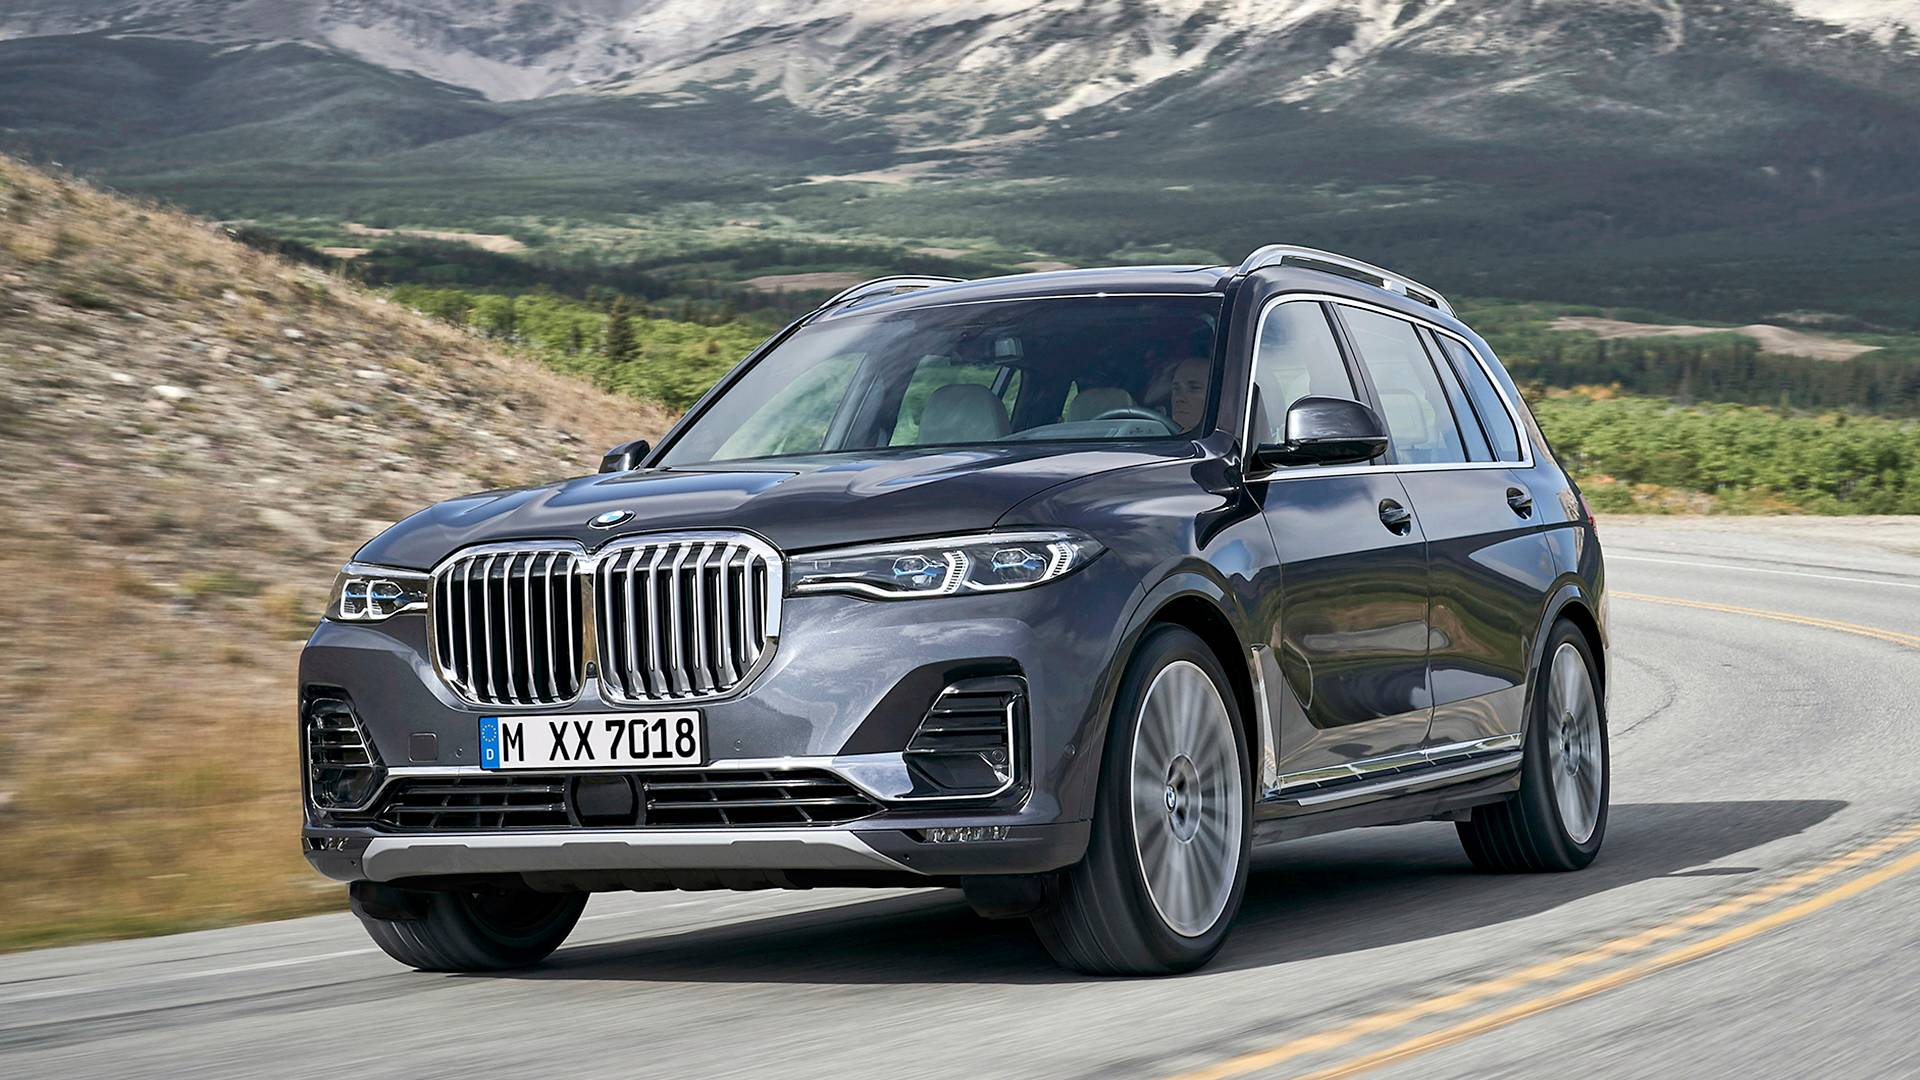 2019 Bmw X7 Arrives Bringing Brawny Face To 7 Seat Suv Segment